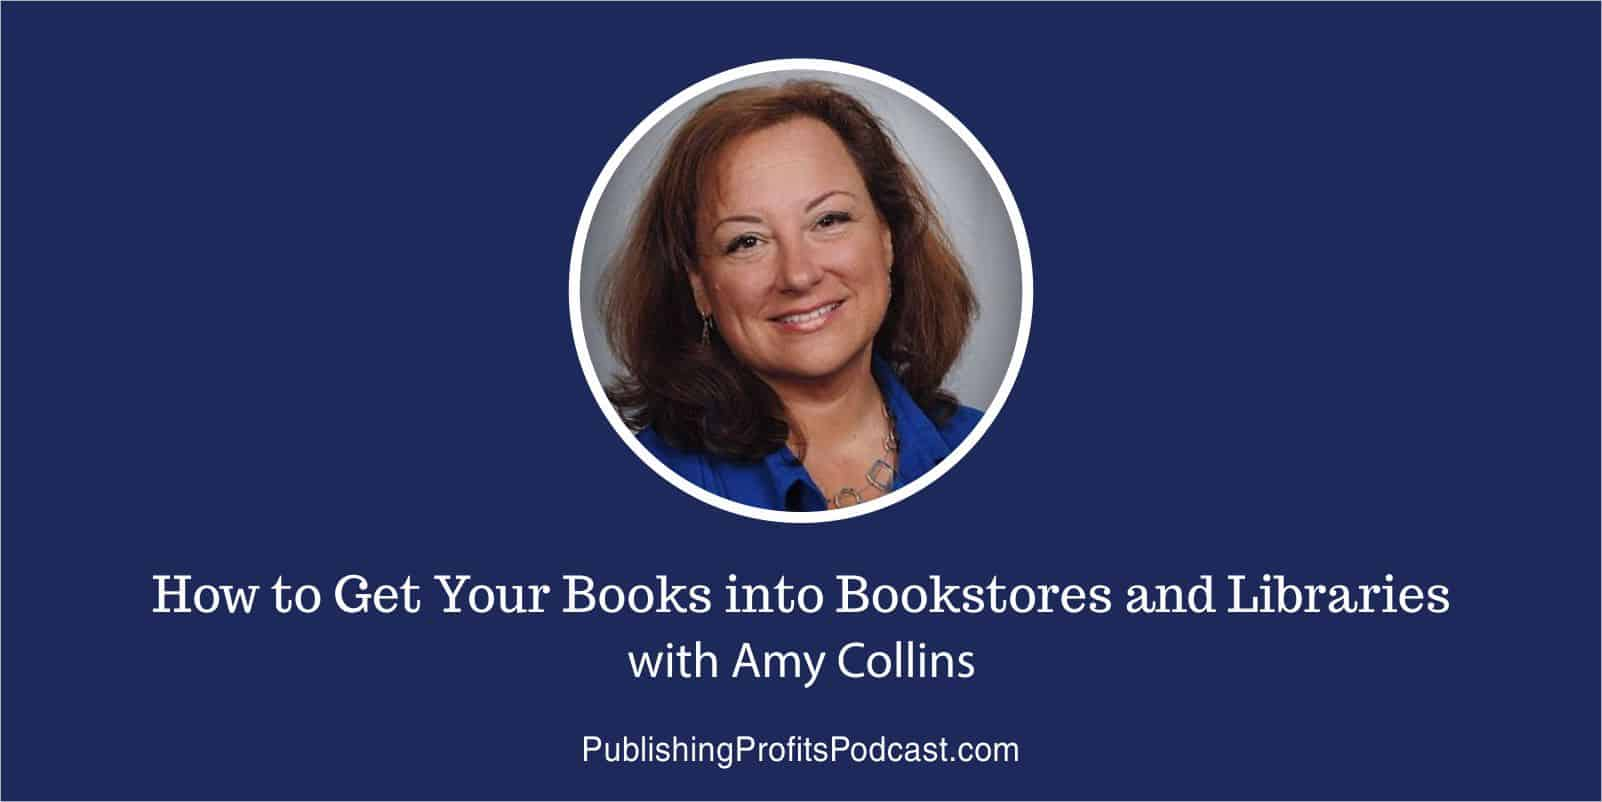 How to Get Your Books with Amy Collins header